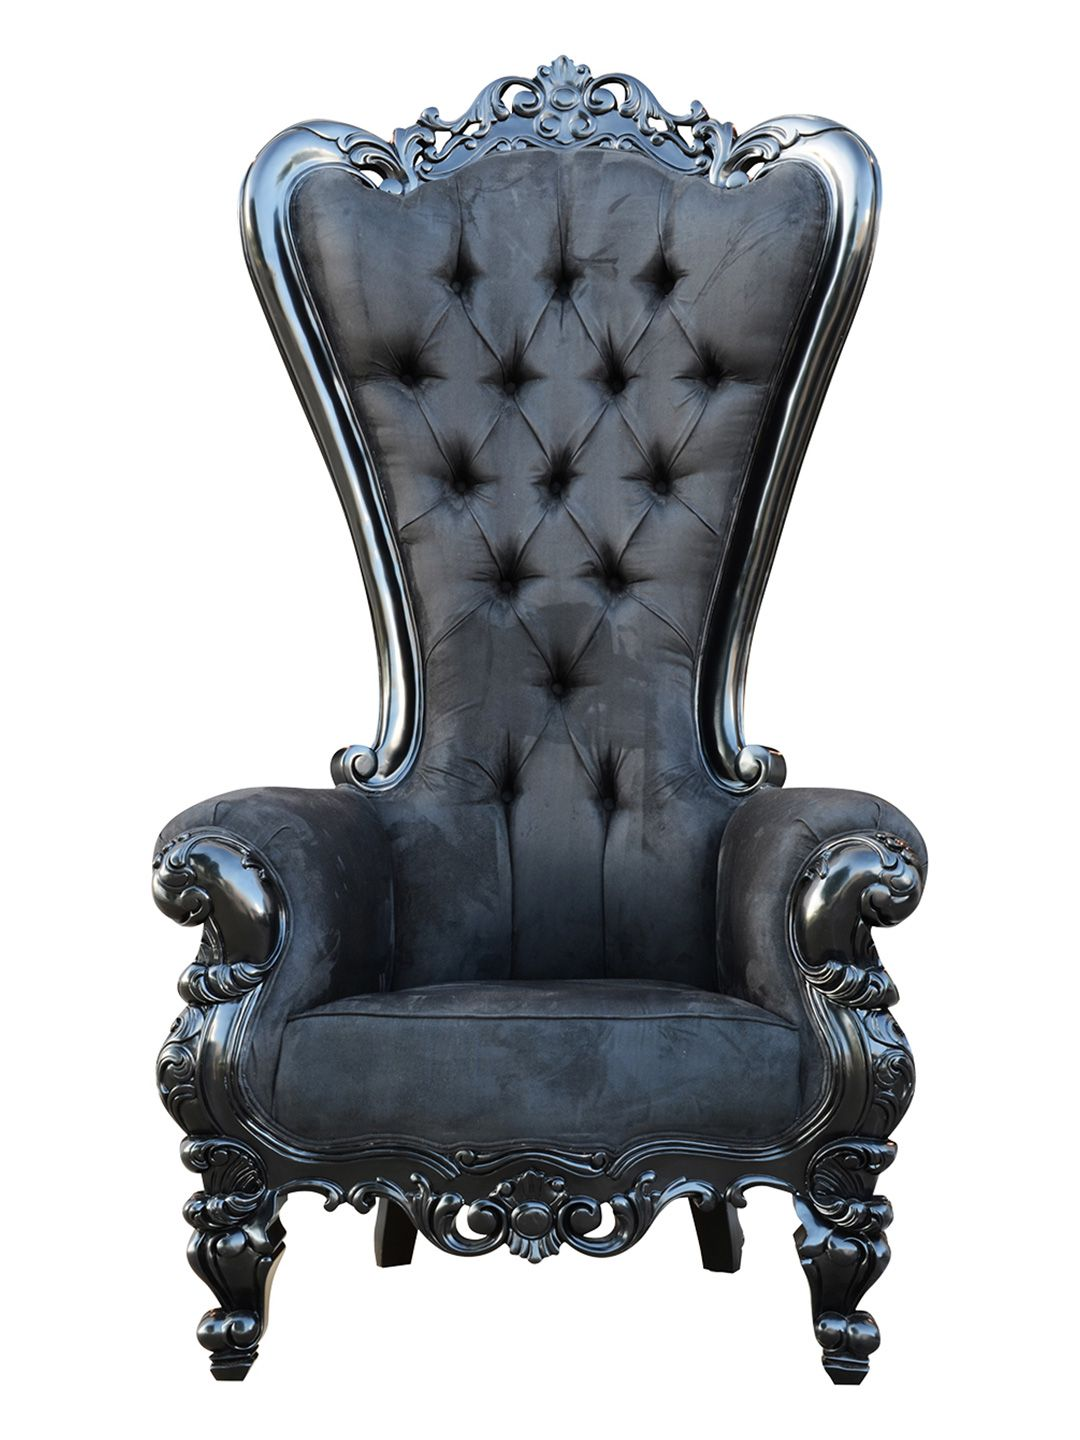 Elvira Throne Chair By Oh My Goth At Gilt Love The Shape With A Little Patina And Diffe Upholster This Would Be Fantastic For Boudoir